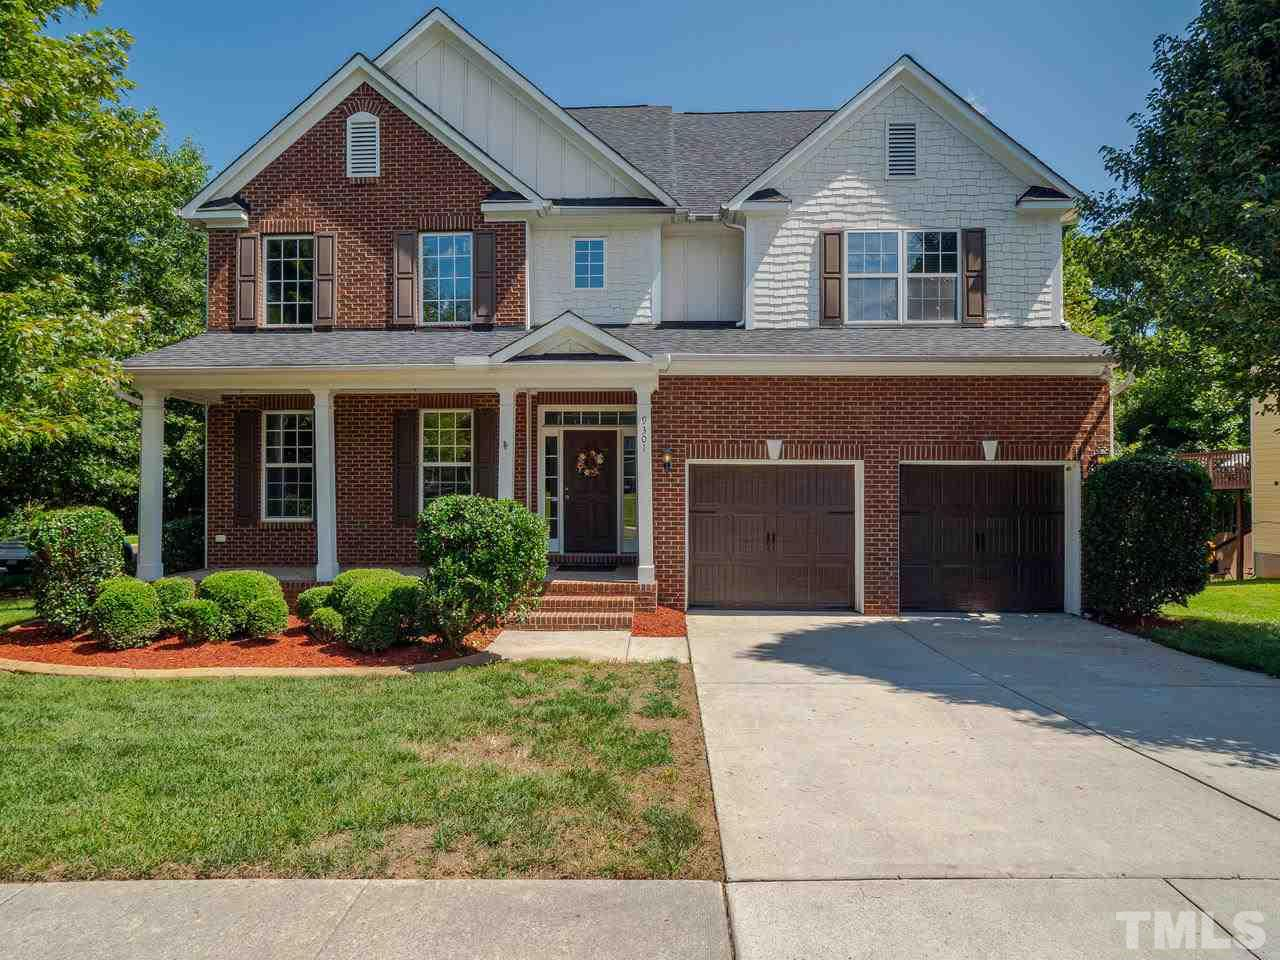 Homes for Sale in Wake Forest, NC.